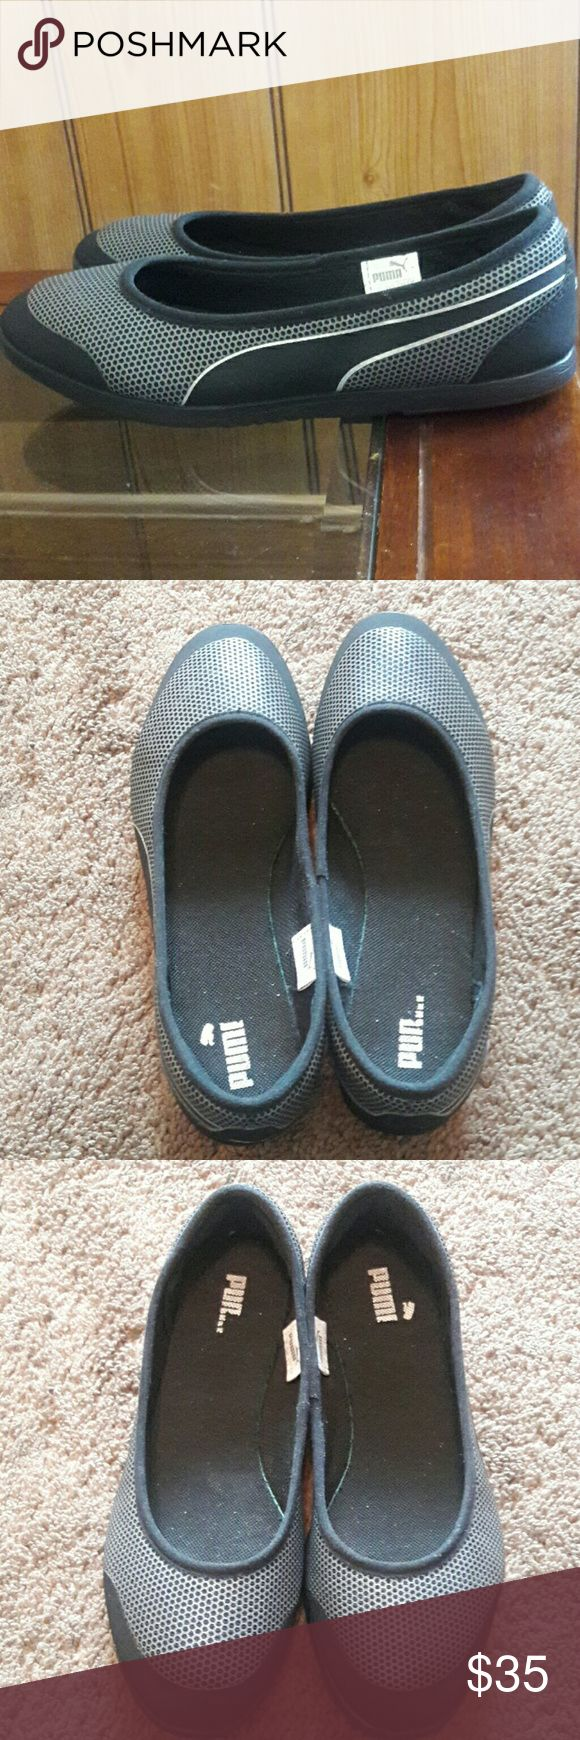 PUMA CASUAL SHOES PUMA CASUAL SHOES, size 6.5 very confotable, flat, perfect for summer and fall, sintethic upper, in very good conditions the only damage is don't have the complete name refer to picture #2  BUNDLE AND SAVE 20% OPEN TO OFFER 😊 Puma Shoes Flats & Loafers